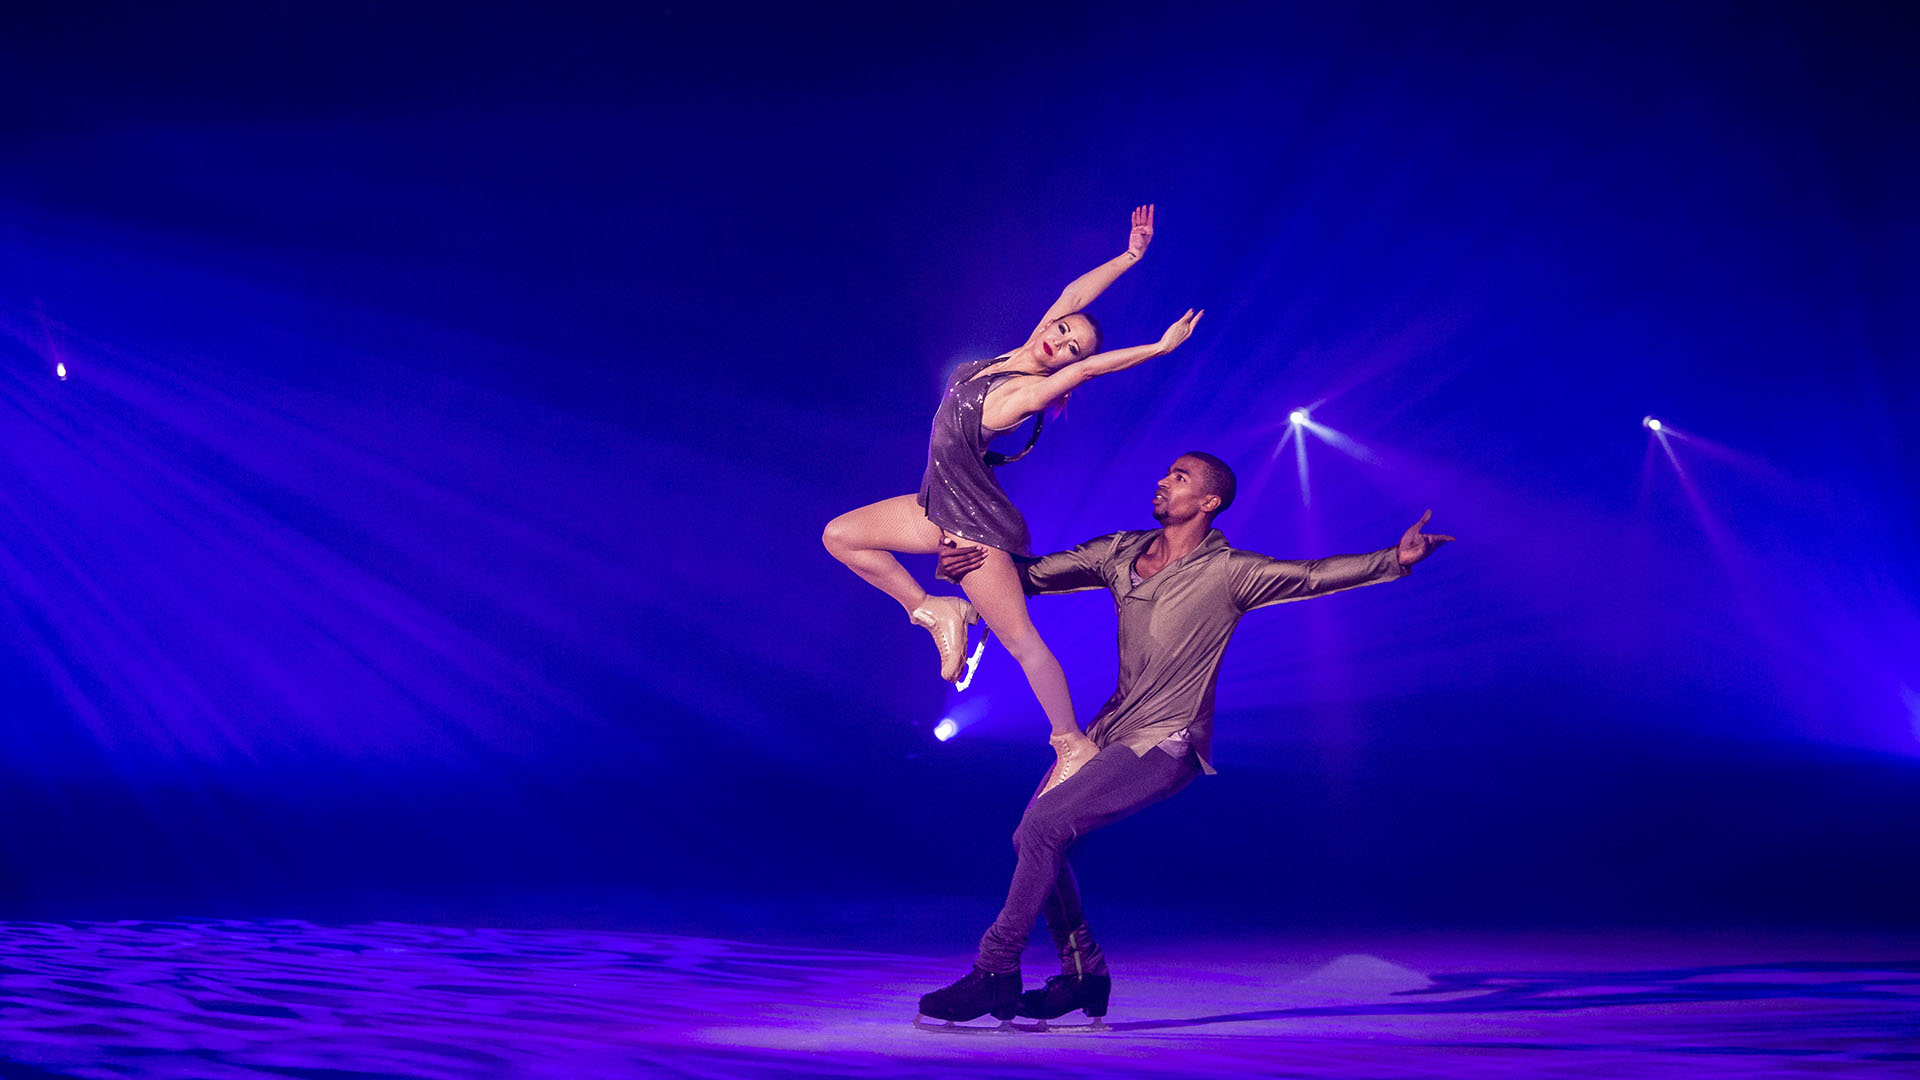 1-min_0008_--staging.holidayonice.com-core-wp-content-uploads-sites-2-2017-08-time-10